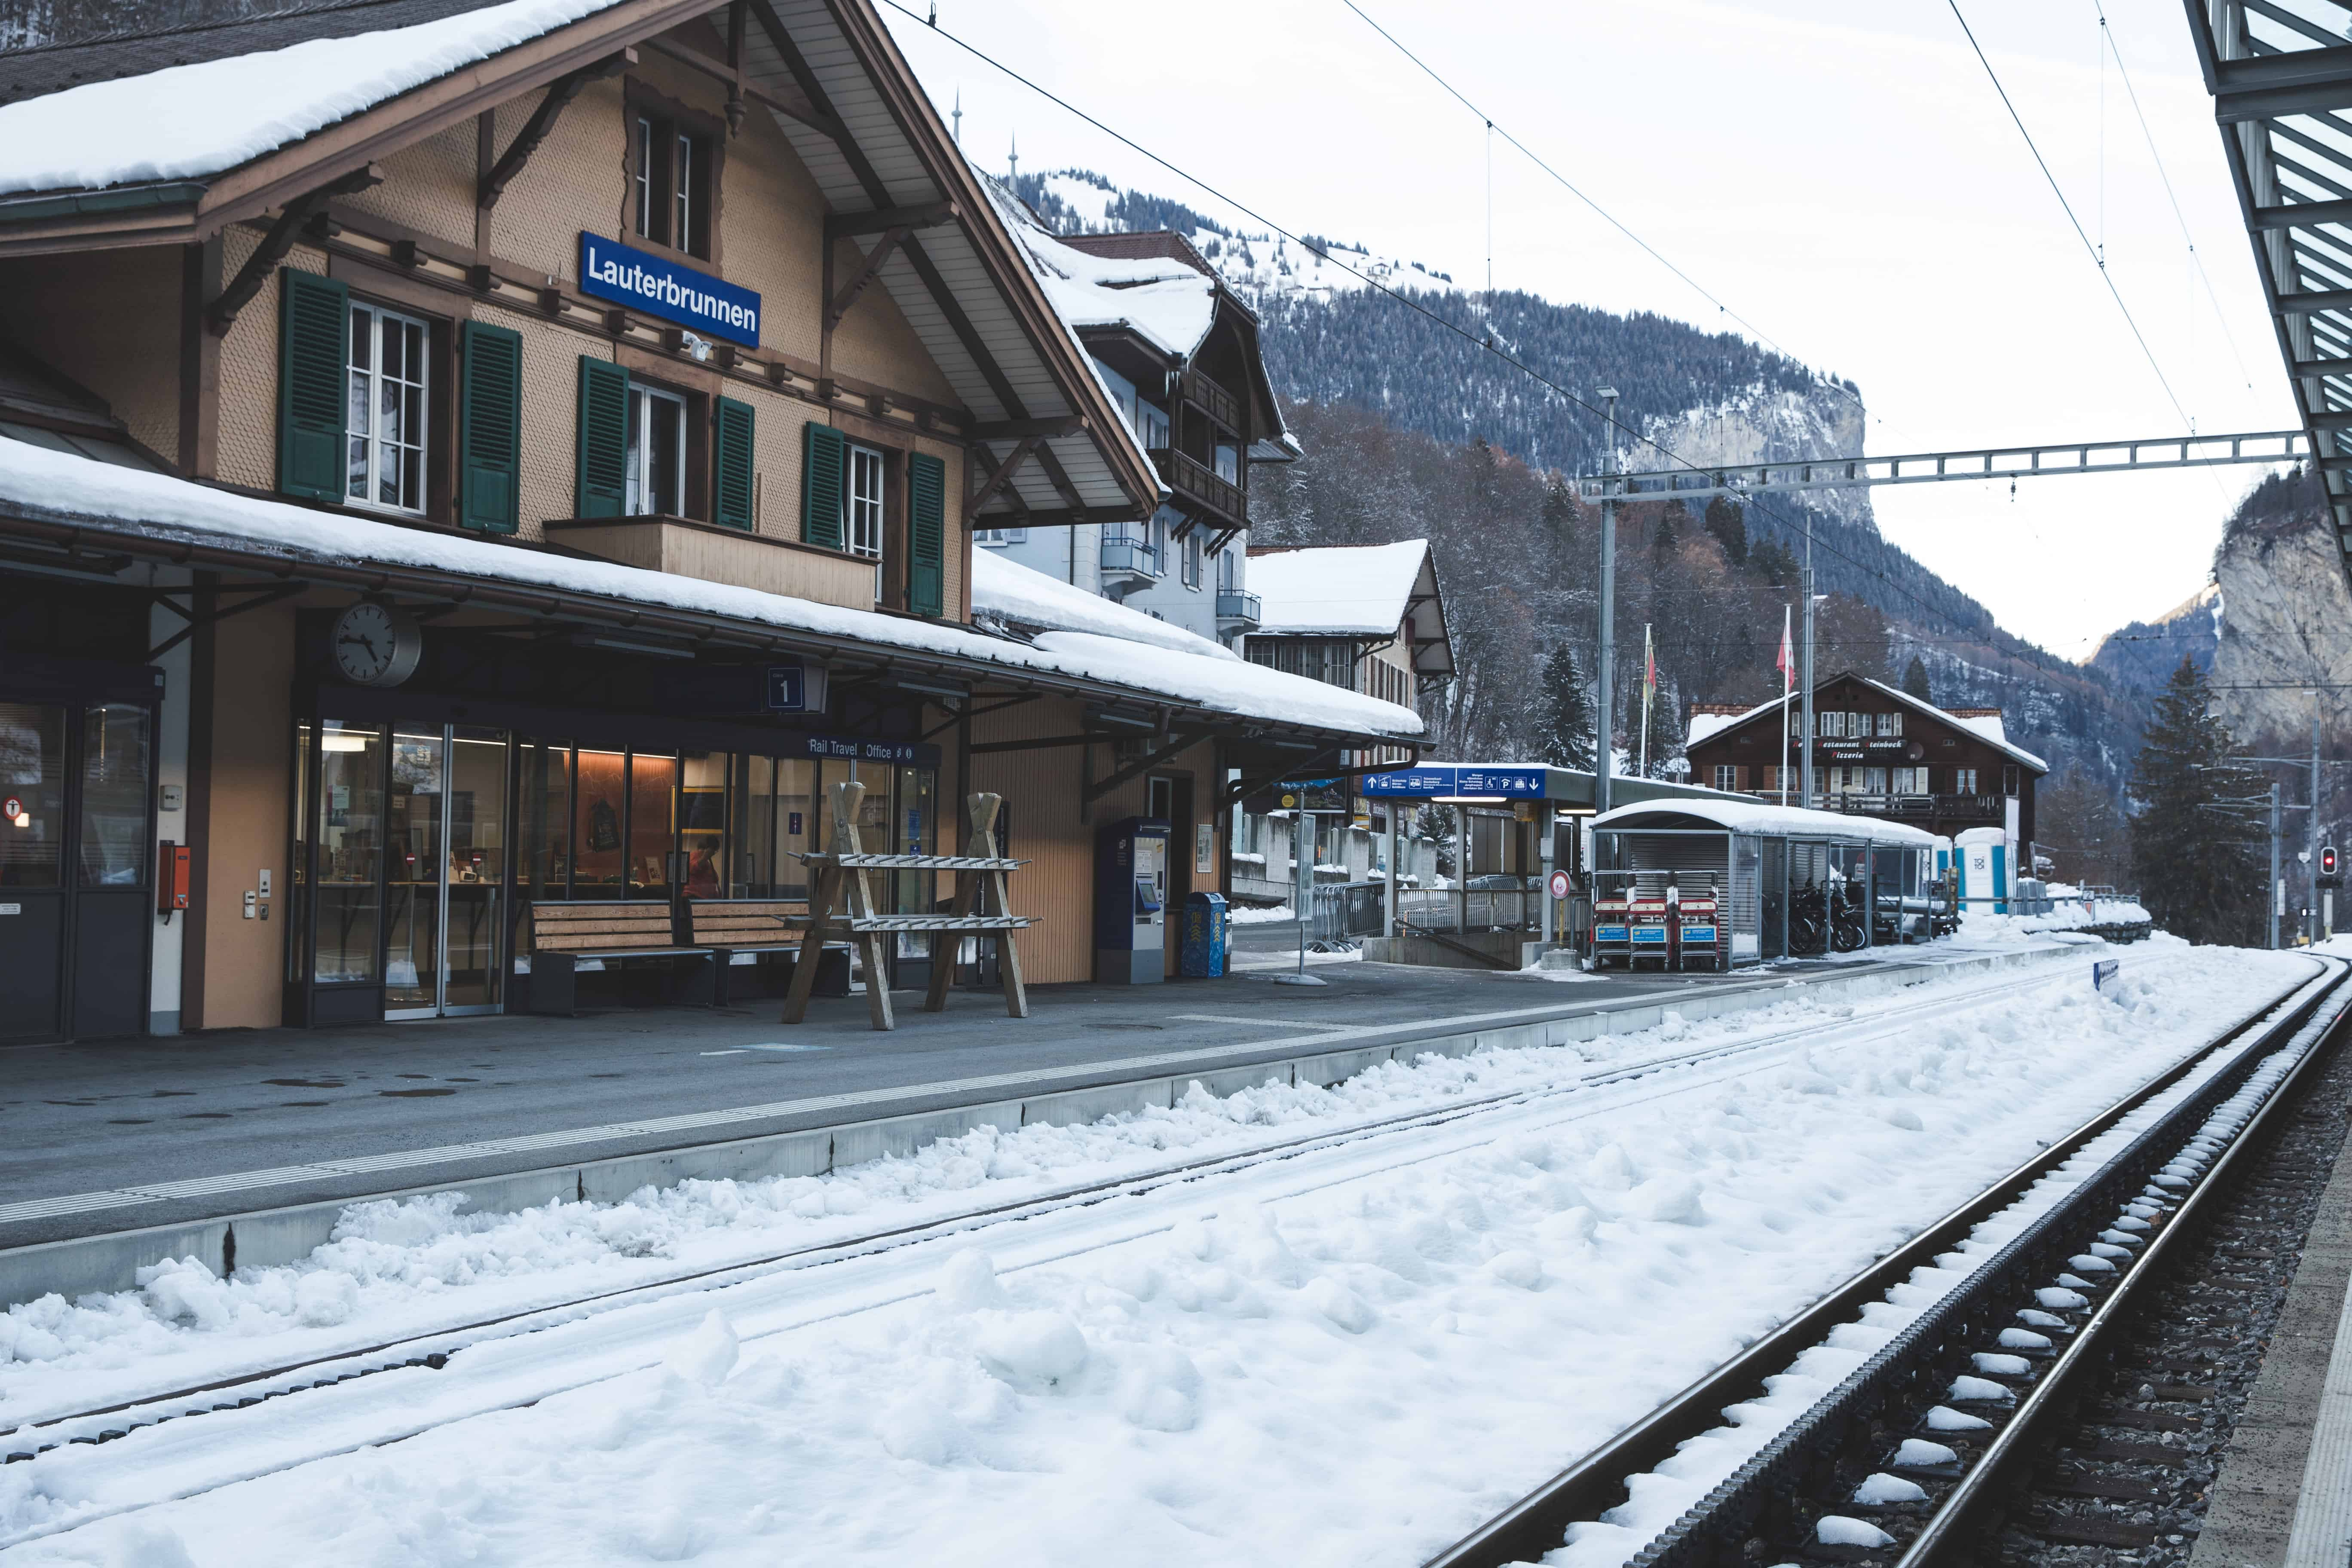 Lauterbrunnen is a pretty Swiss Alps ski town to visit in winter in Switzerland